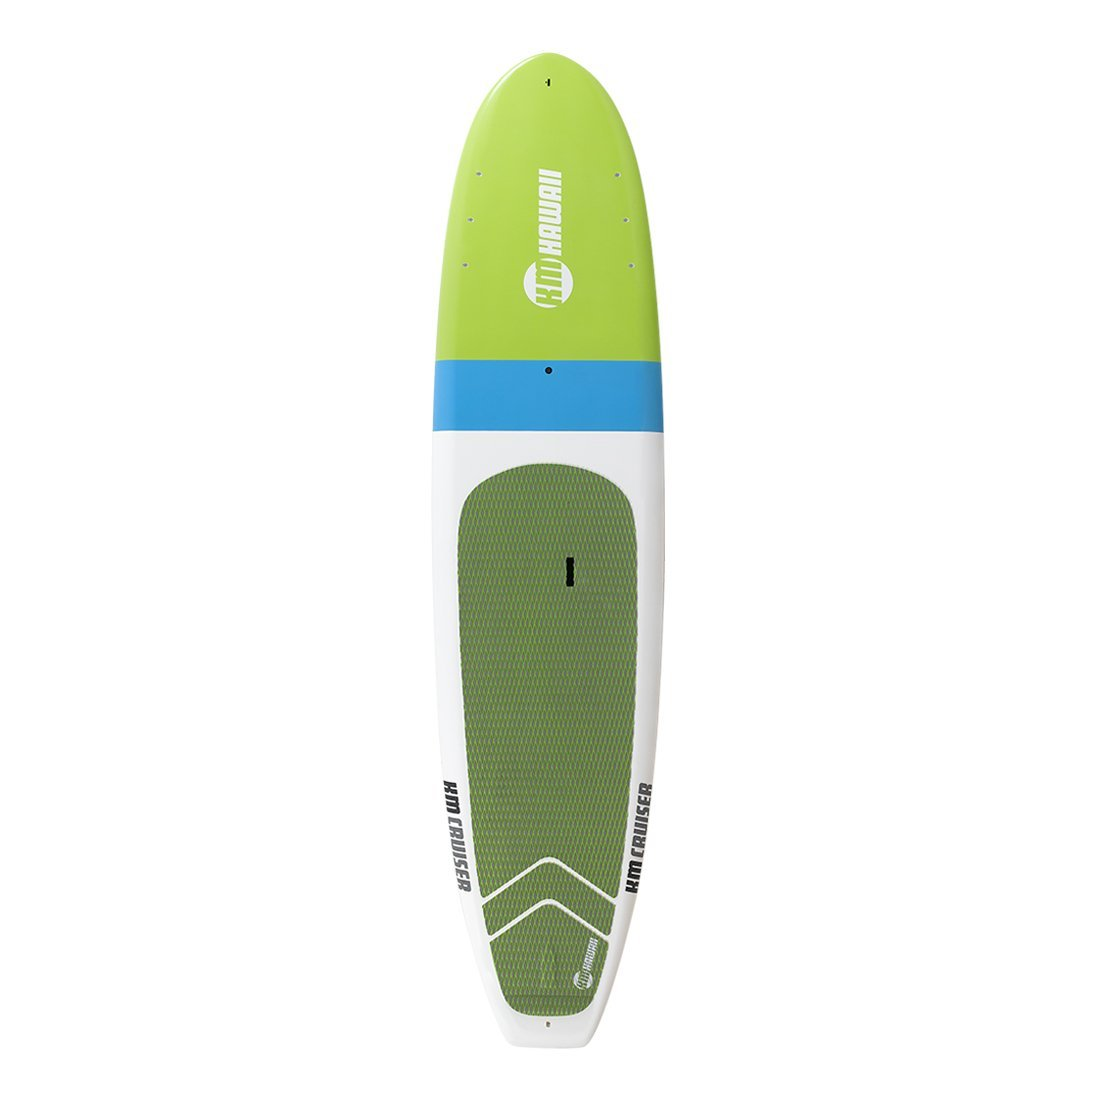 KM Hawaii SUP Cruiser All Around Standup Paddle Board Paddle Boards 4theoutdoors Canada SUP outdoors